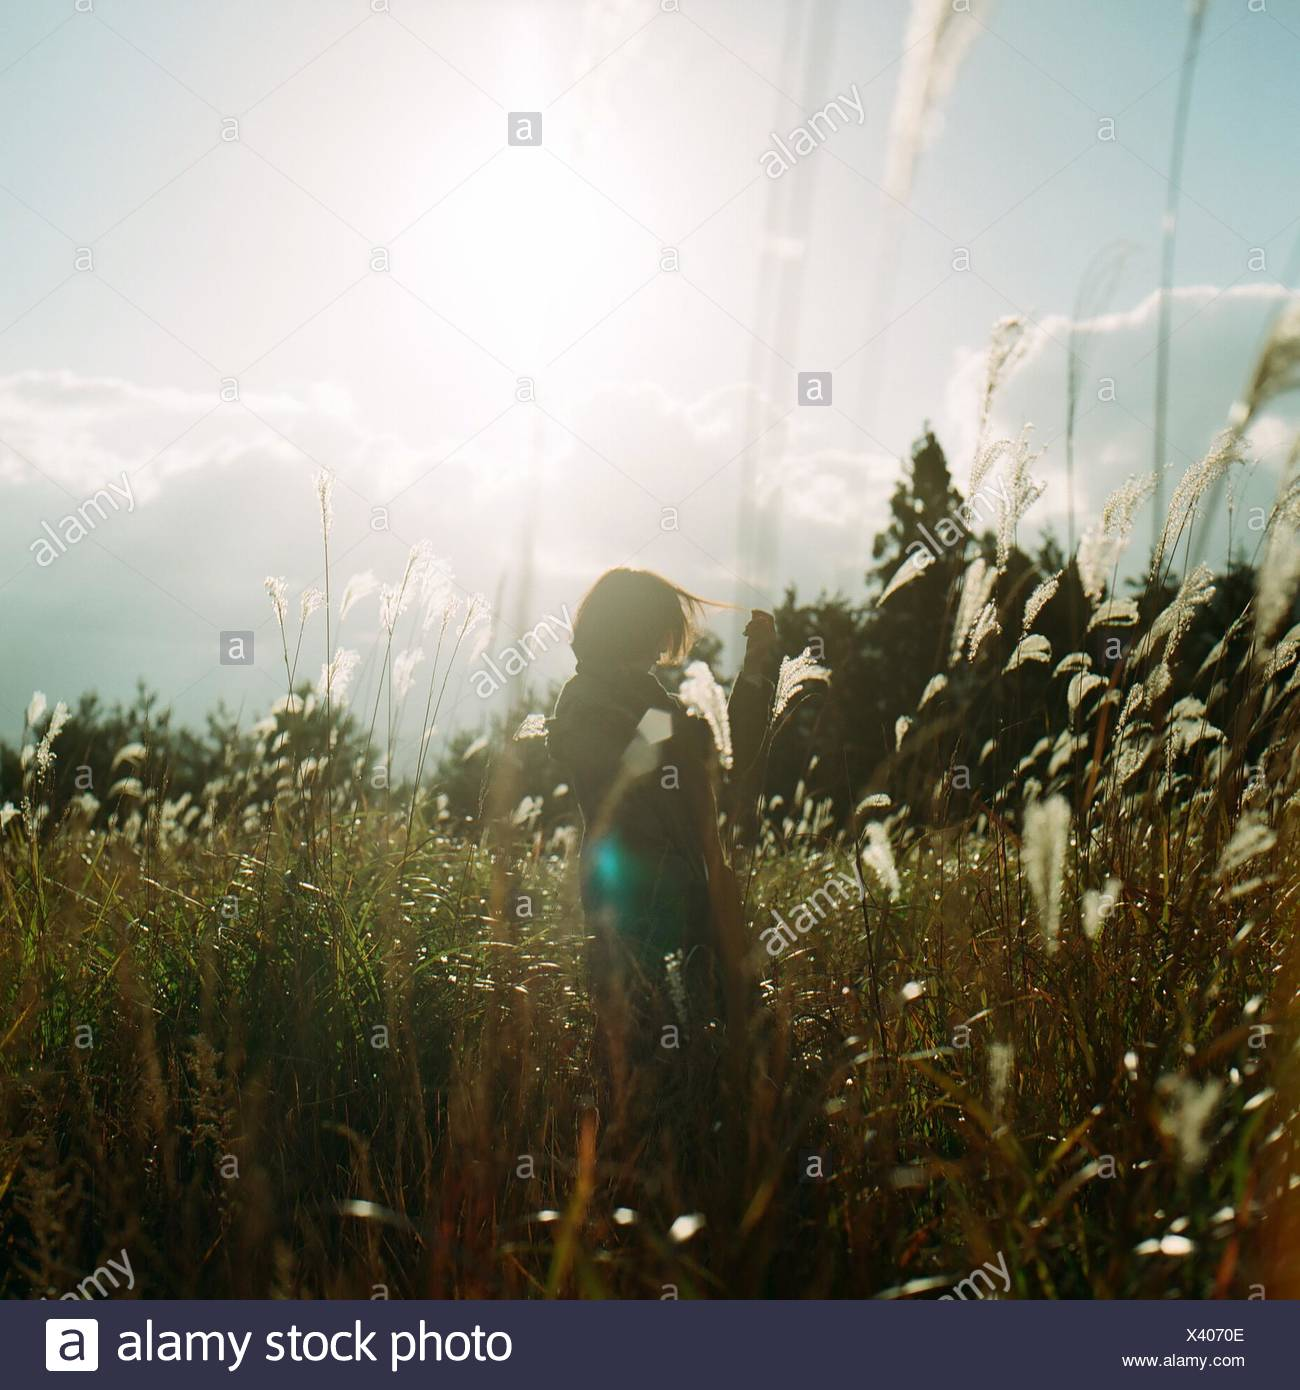 Woman Standing On Grassy Field Against Sky - Stock Image